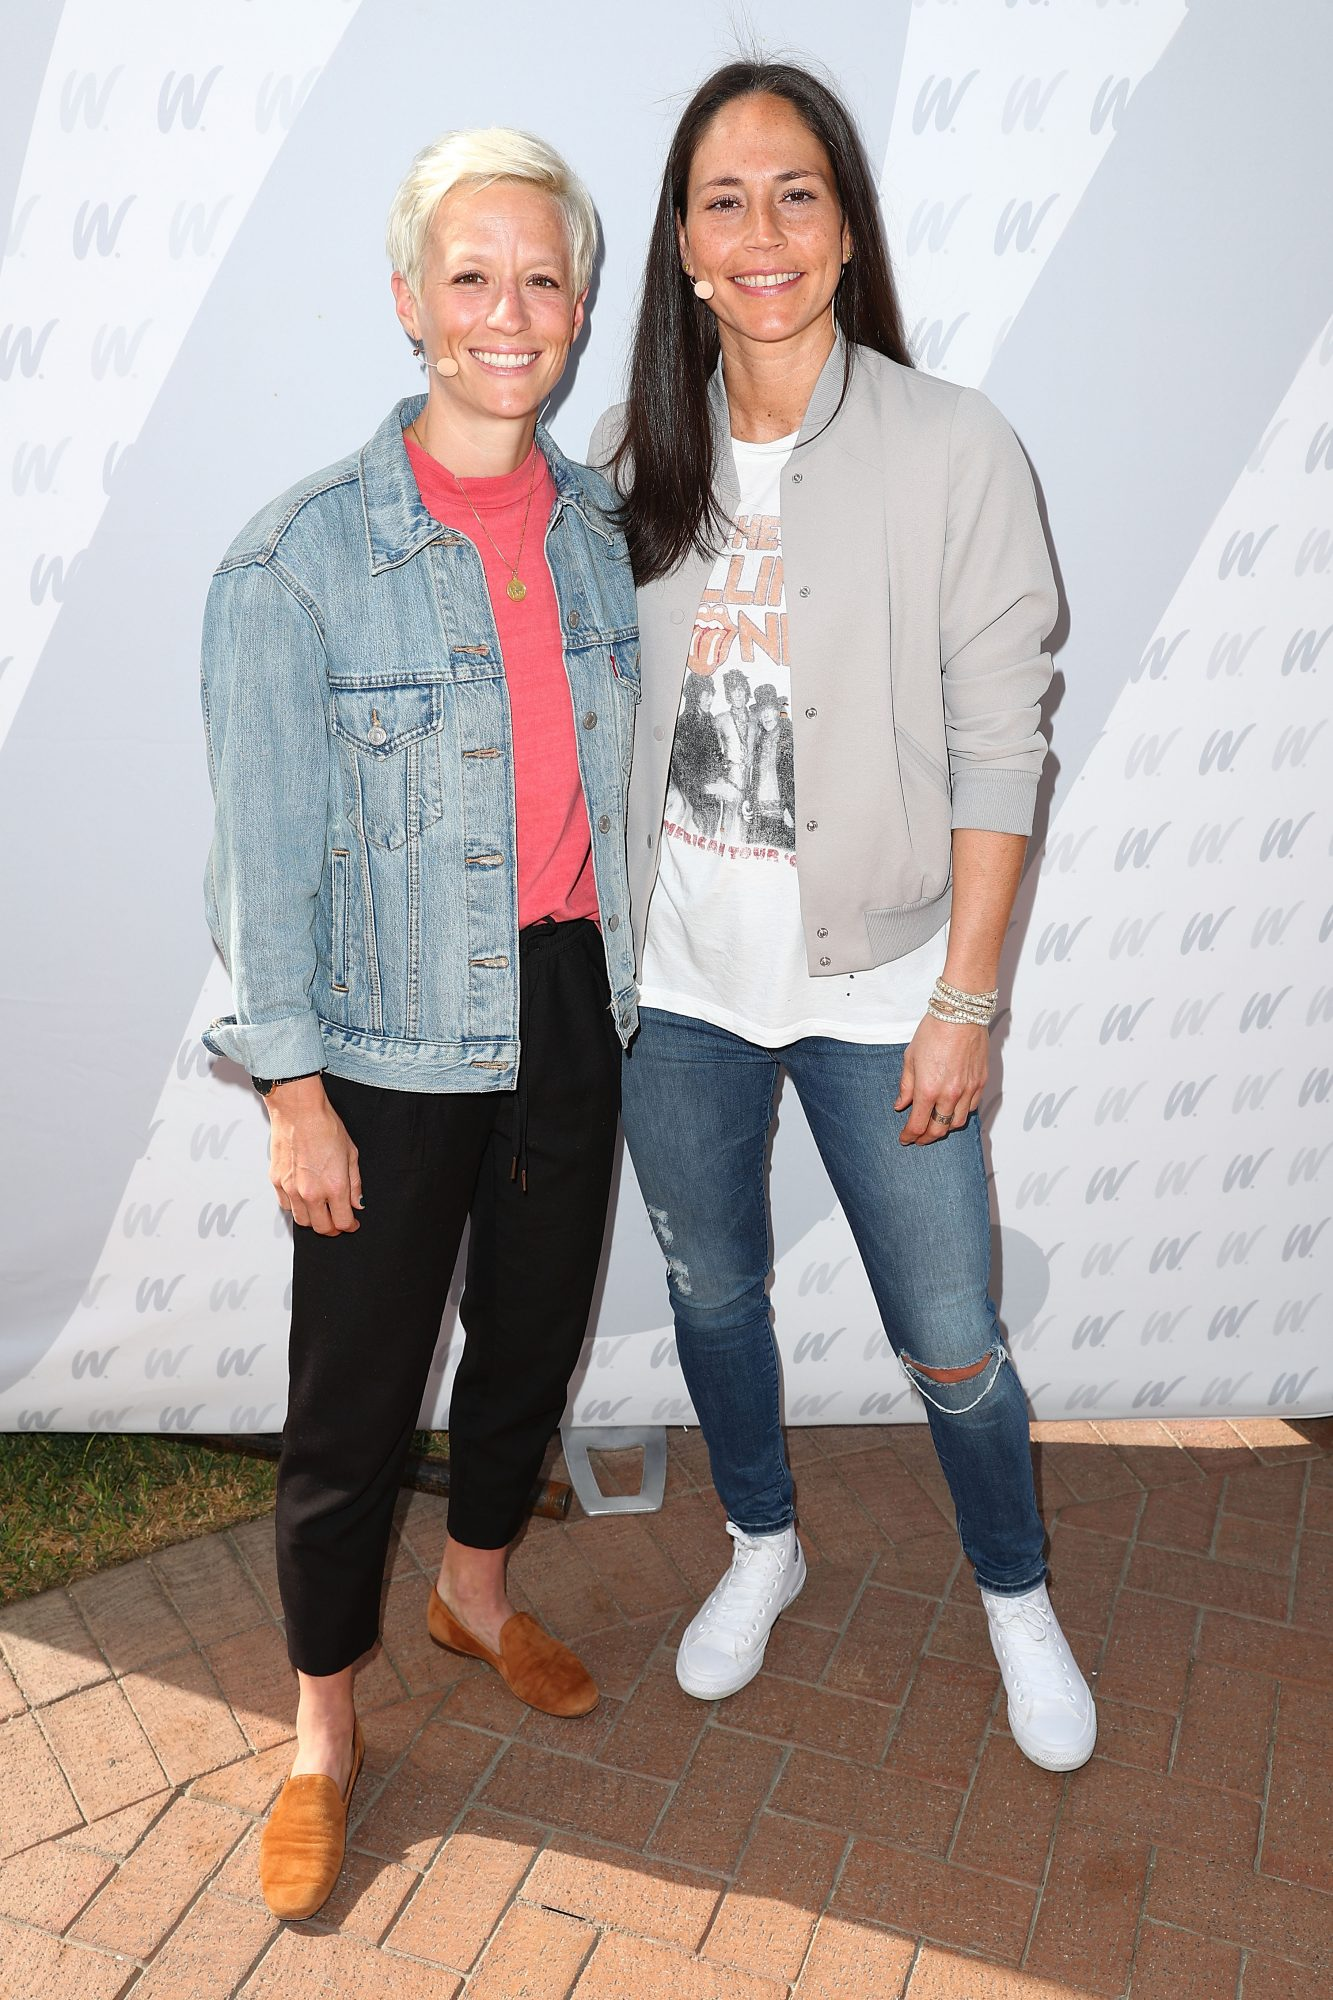 Megan Rapinoe and Sue Bird posing together on the 8th Annual espnW: Women + Sports Summit event red carpet